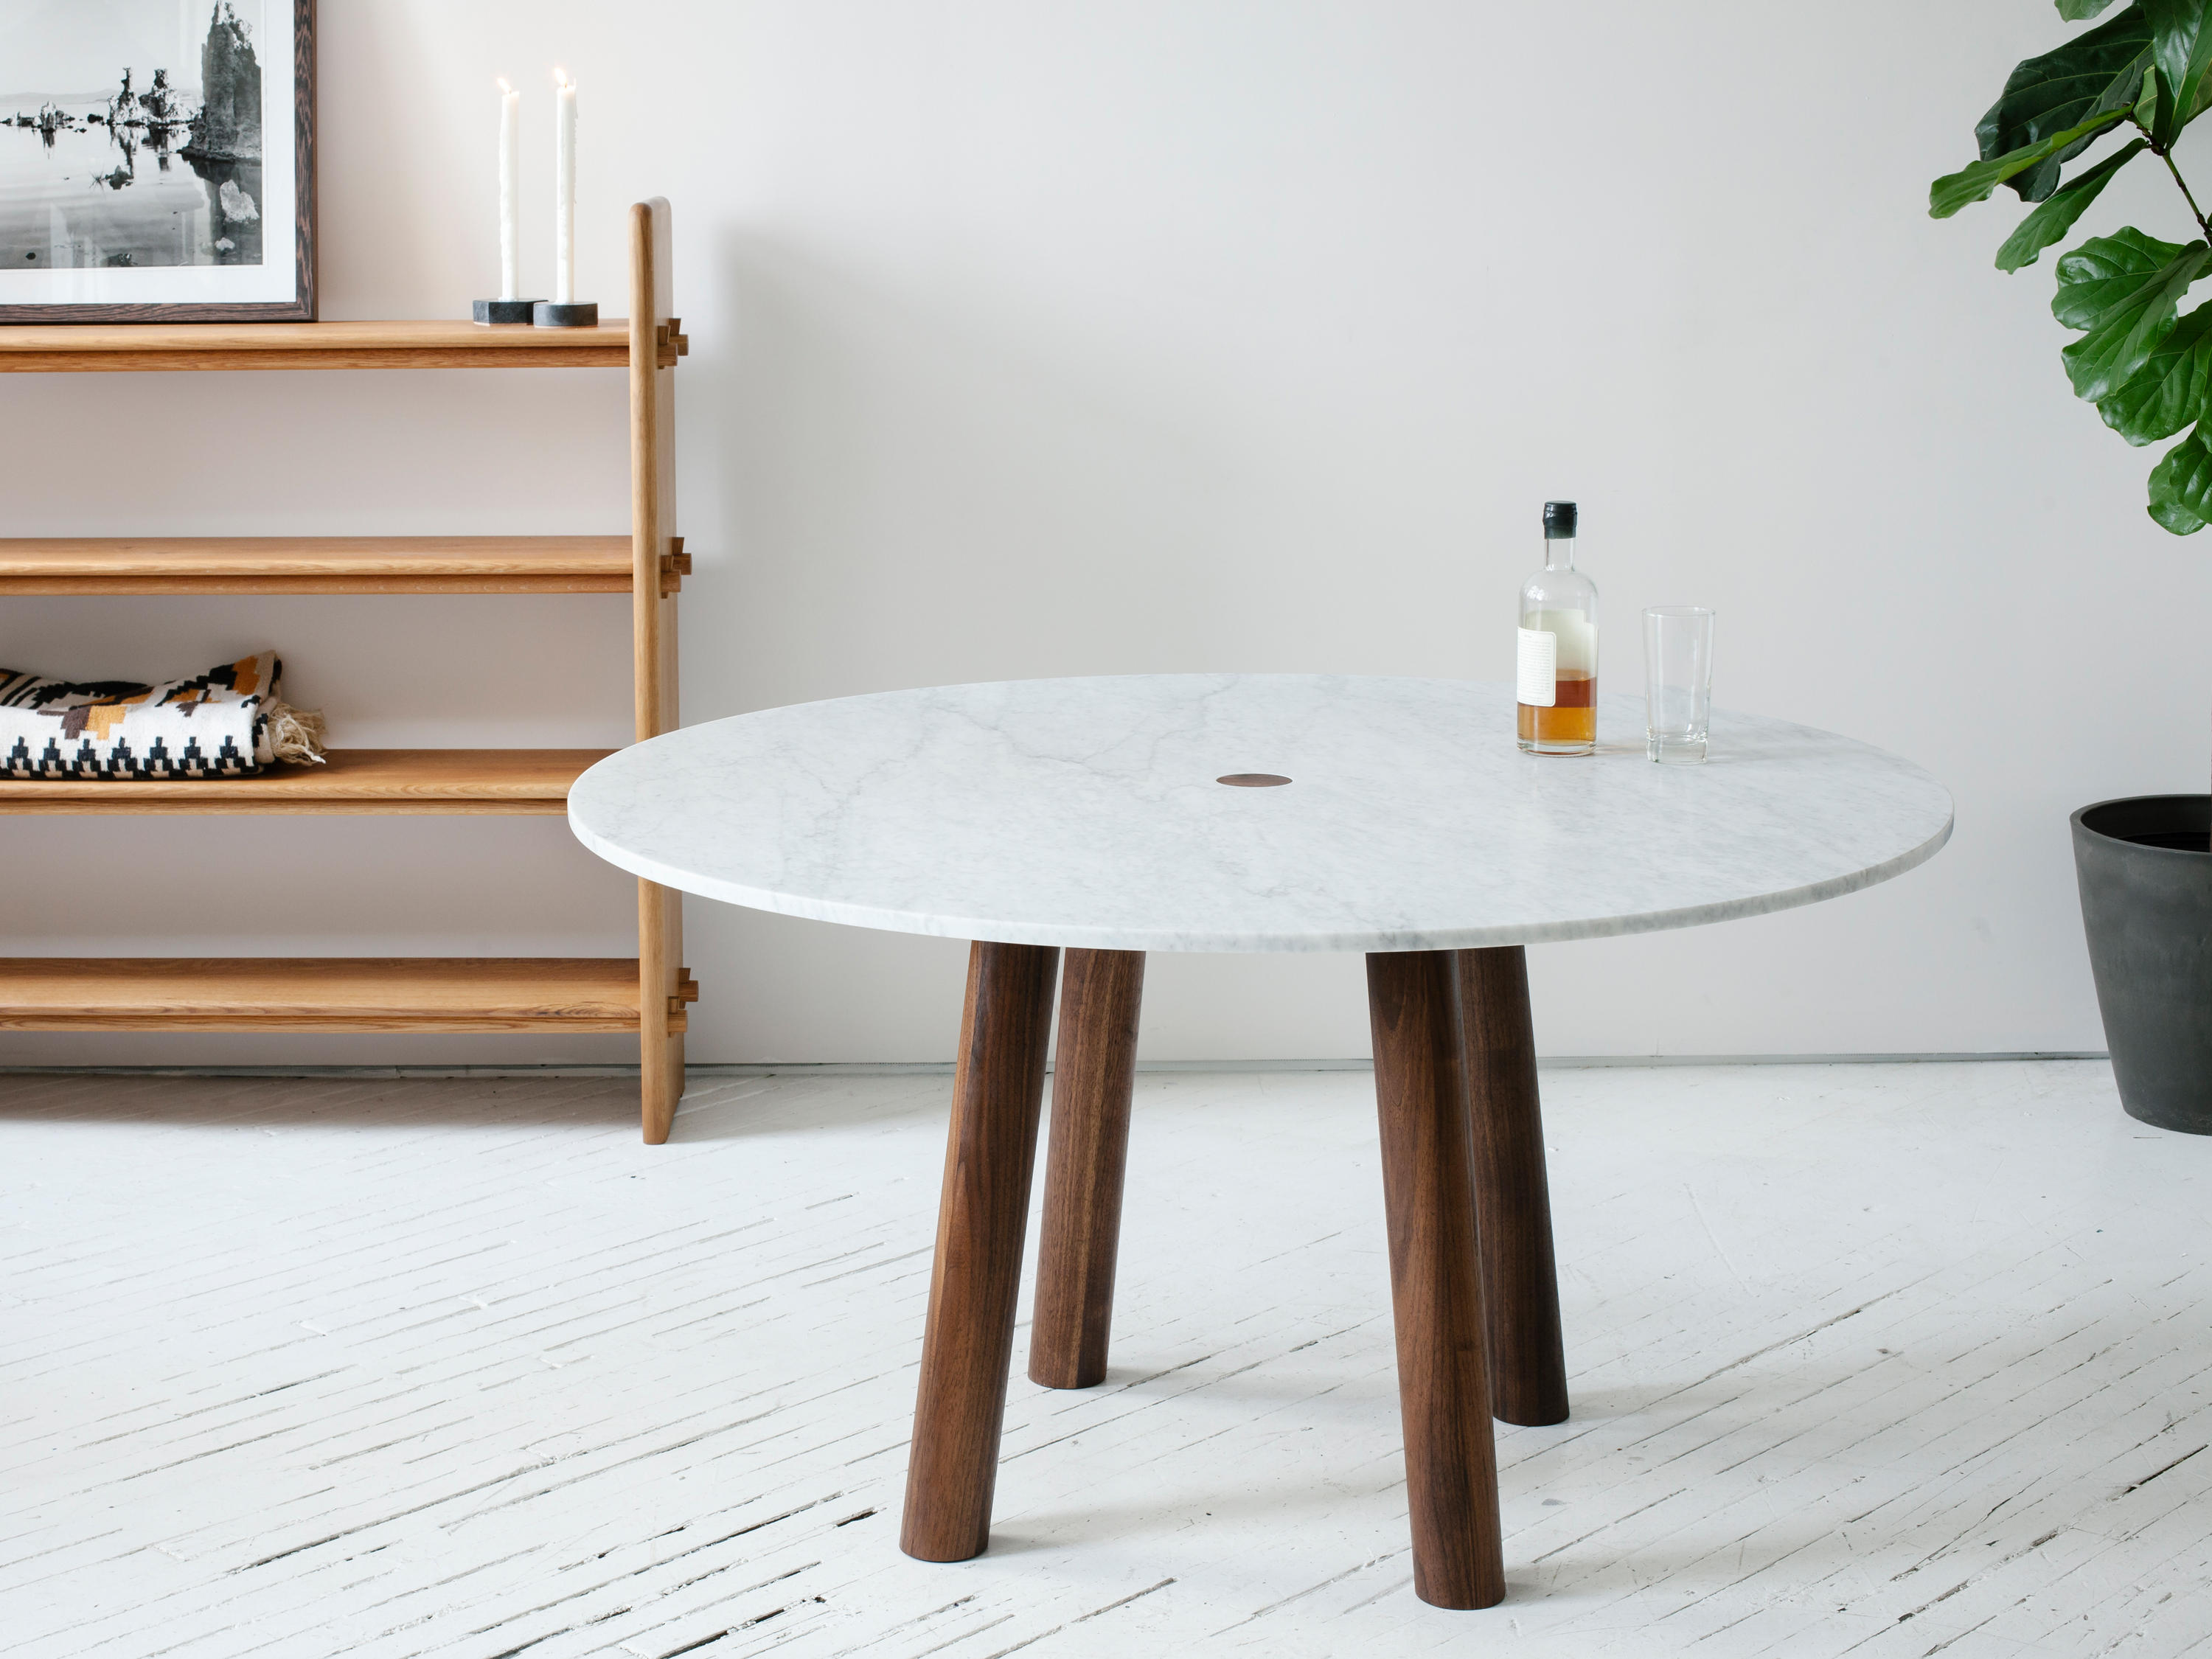 column table round restaurant tables from fort standard architonic column table round by fort standard column table round by fort standard